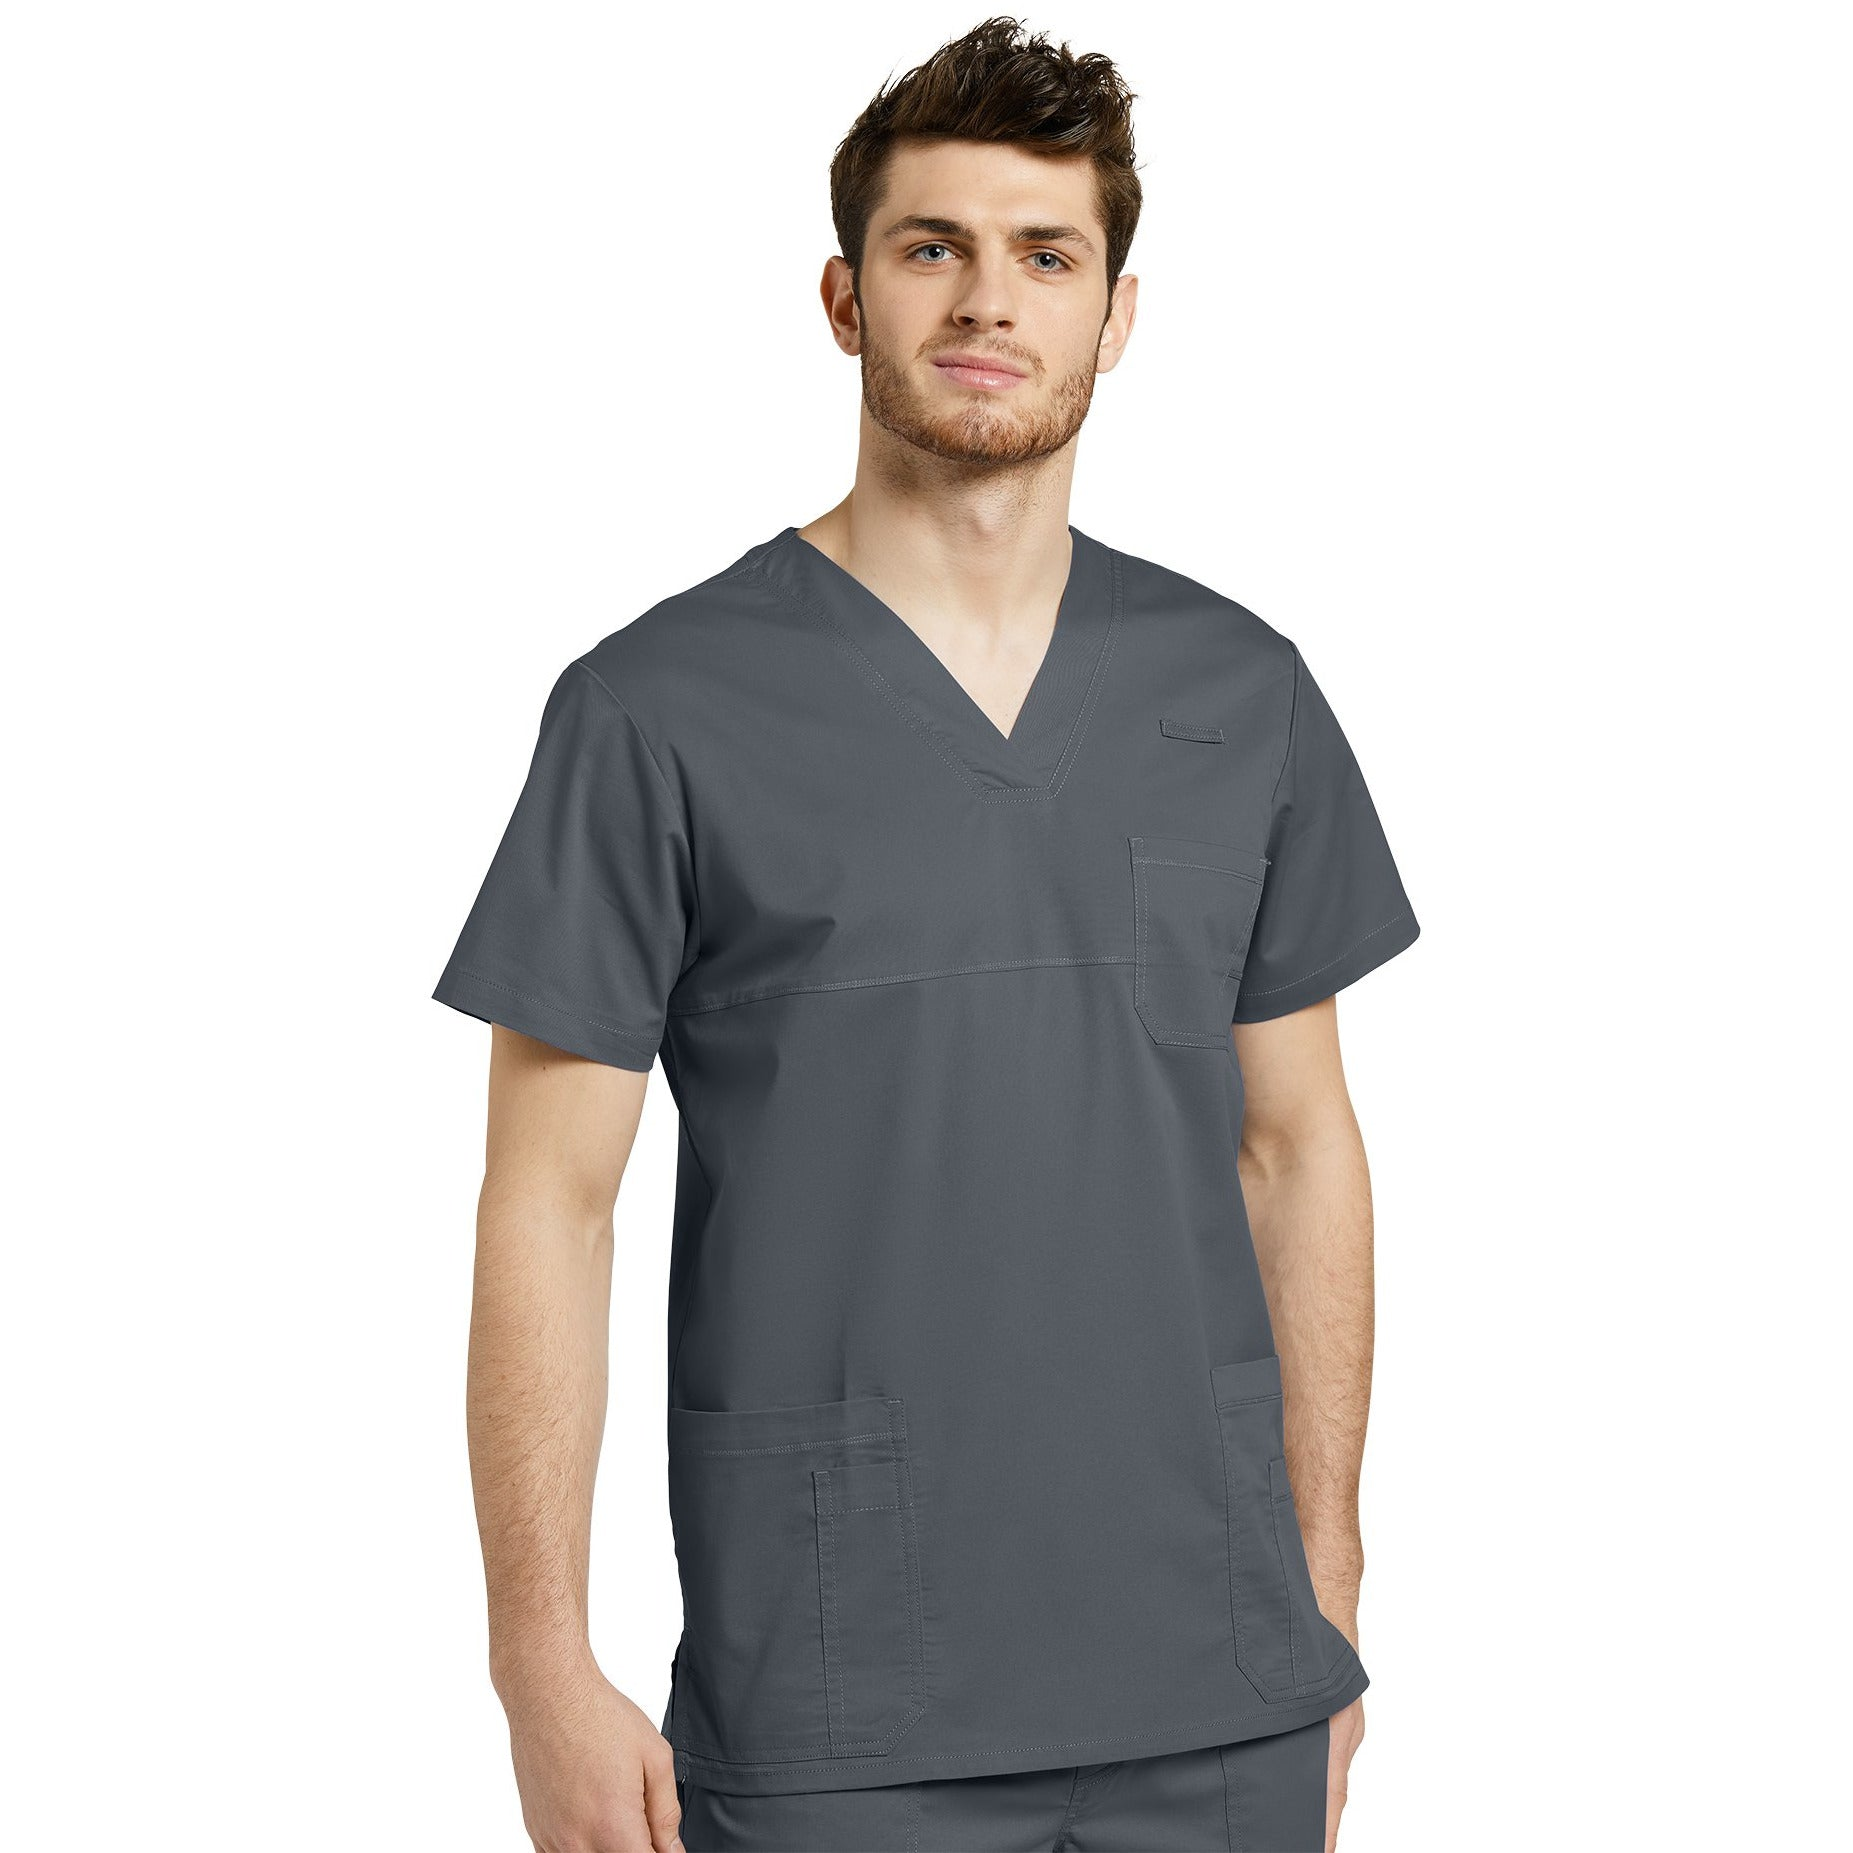 Men Scrub Top ALLURE V-neck top with reverse Cover Stitch 2265